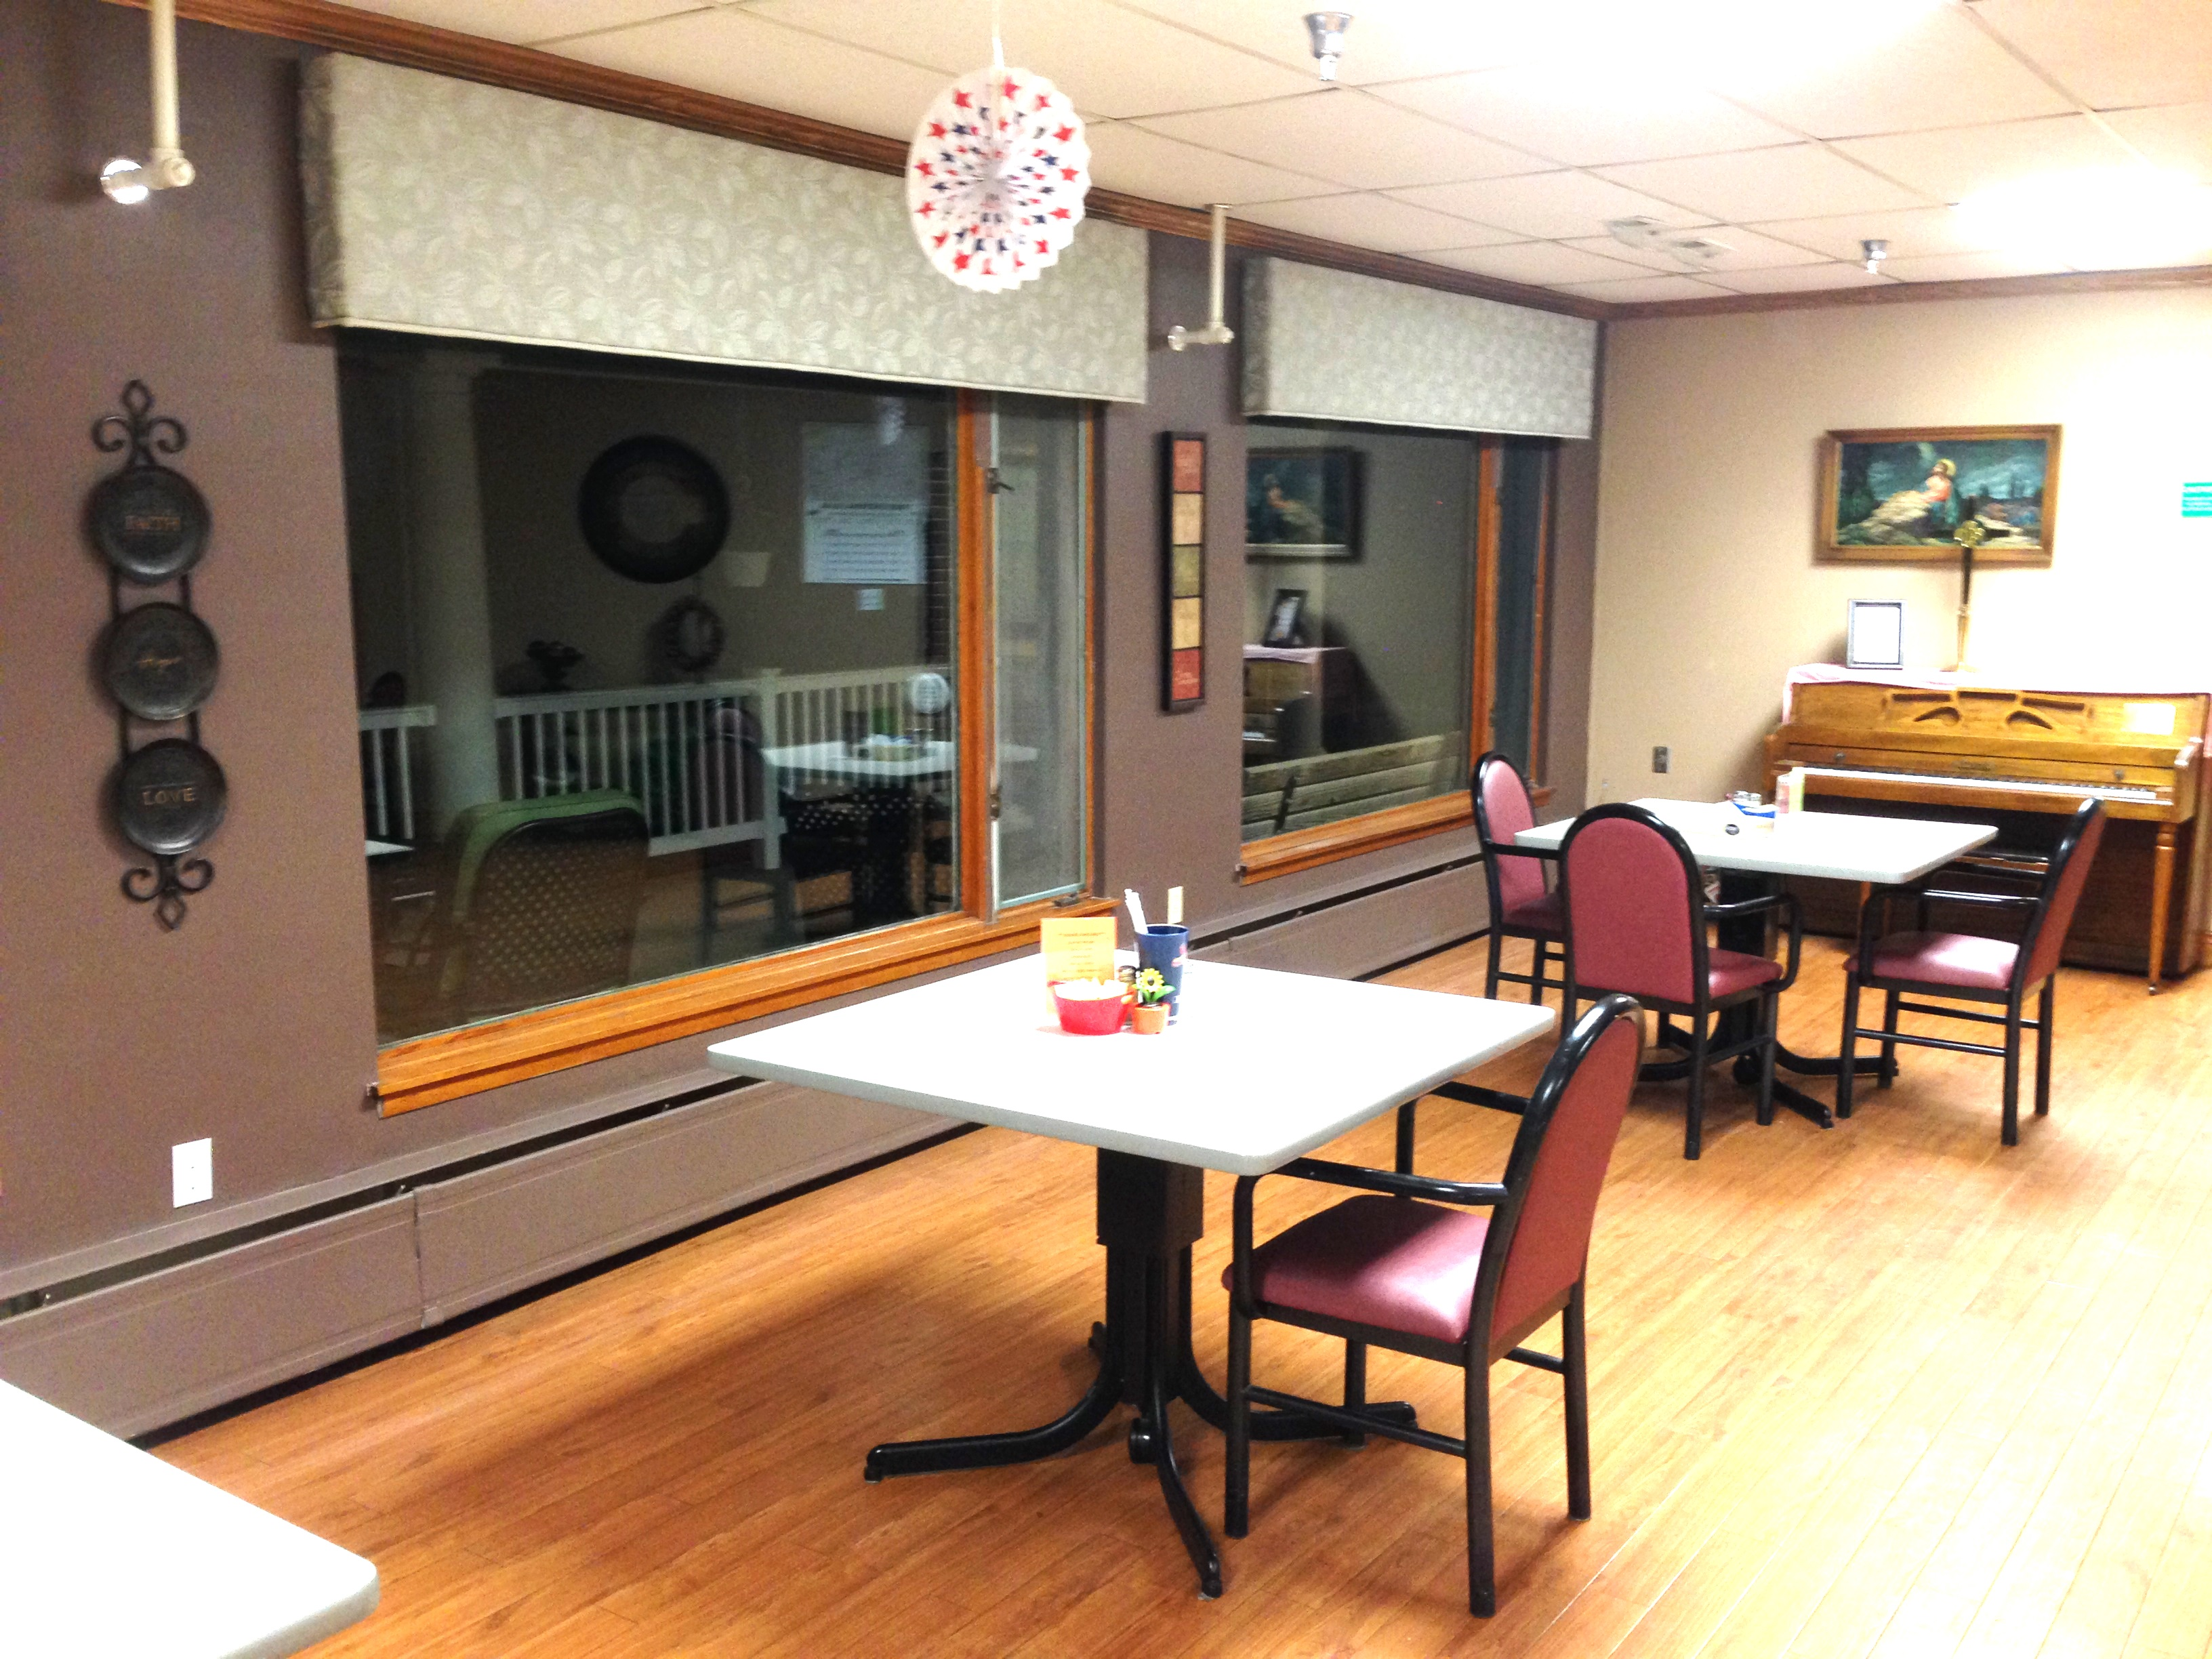 Dining Room and Health Meals